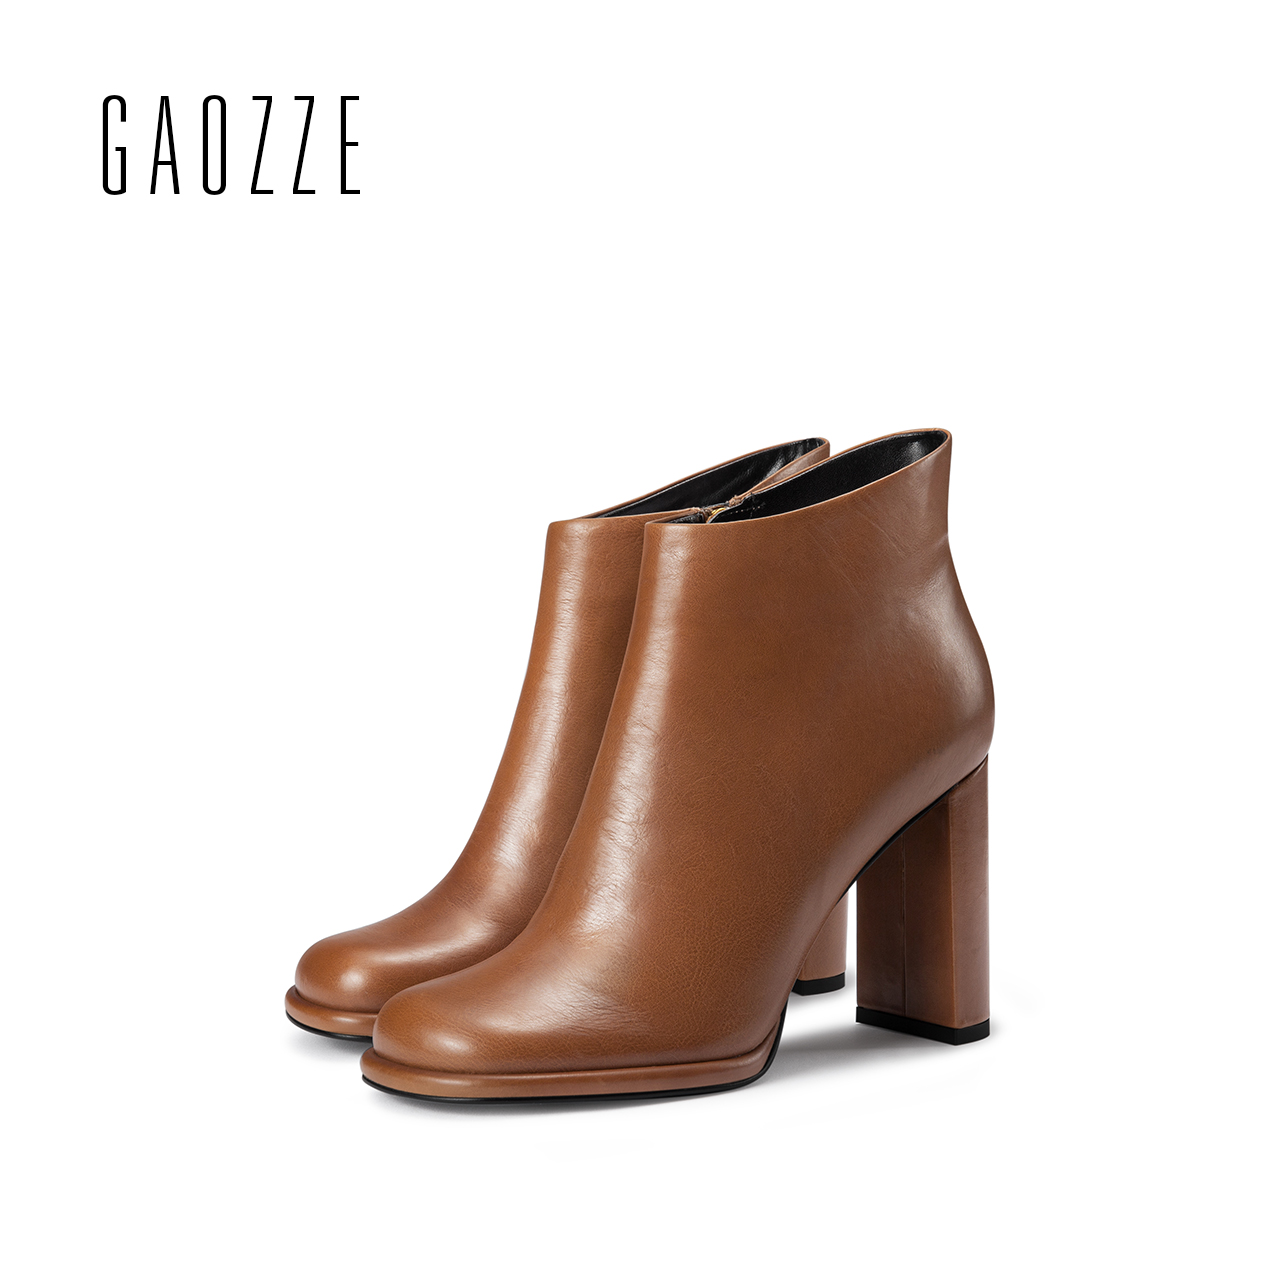 GAOZZE Fashion women boots square toe high heel ankle boots for women 2017 autumn new female side zipper brown leather boots woman platform square high heel buckle ankle boots fashion round toe side zipper dress winter boots black brown gray white